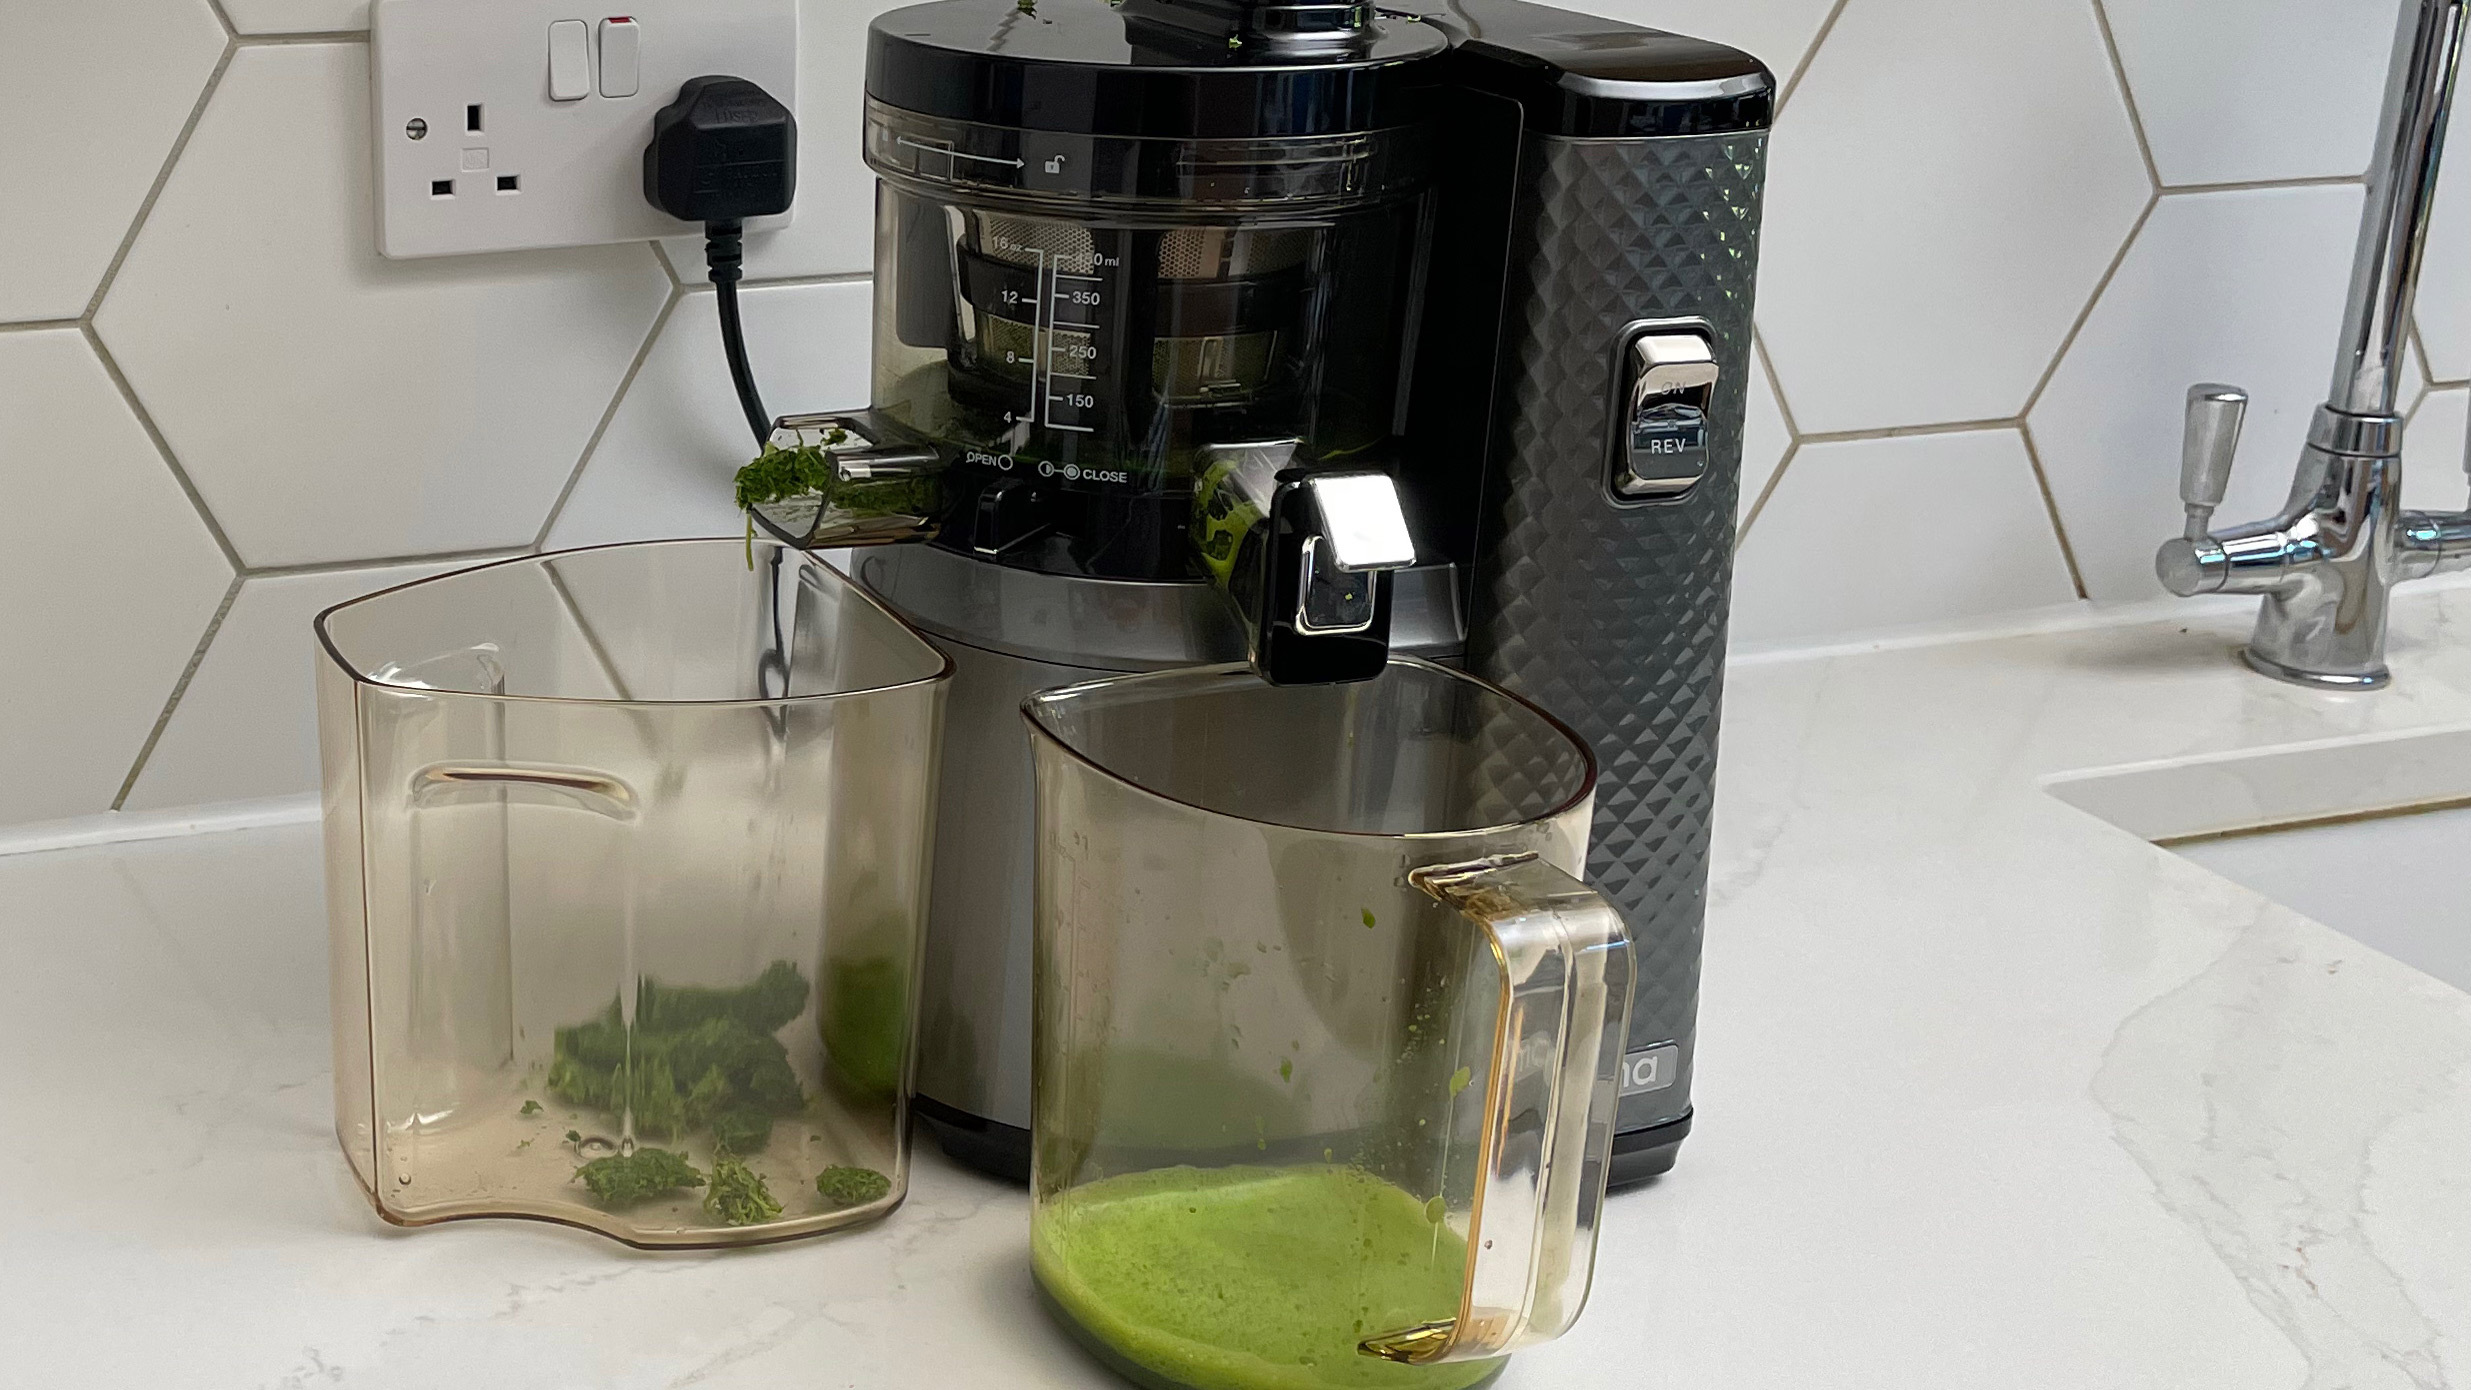 Nama Vitality 5800 on a kitchen countertop in use juicing kale